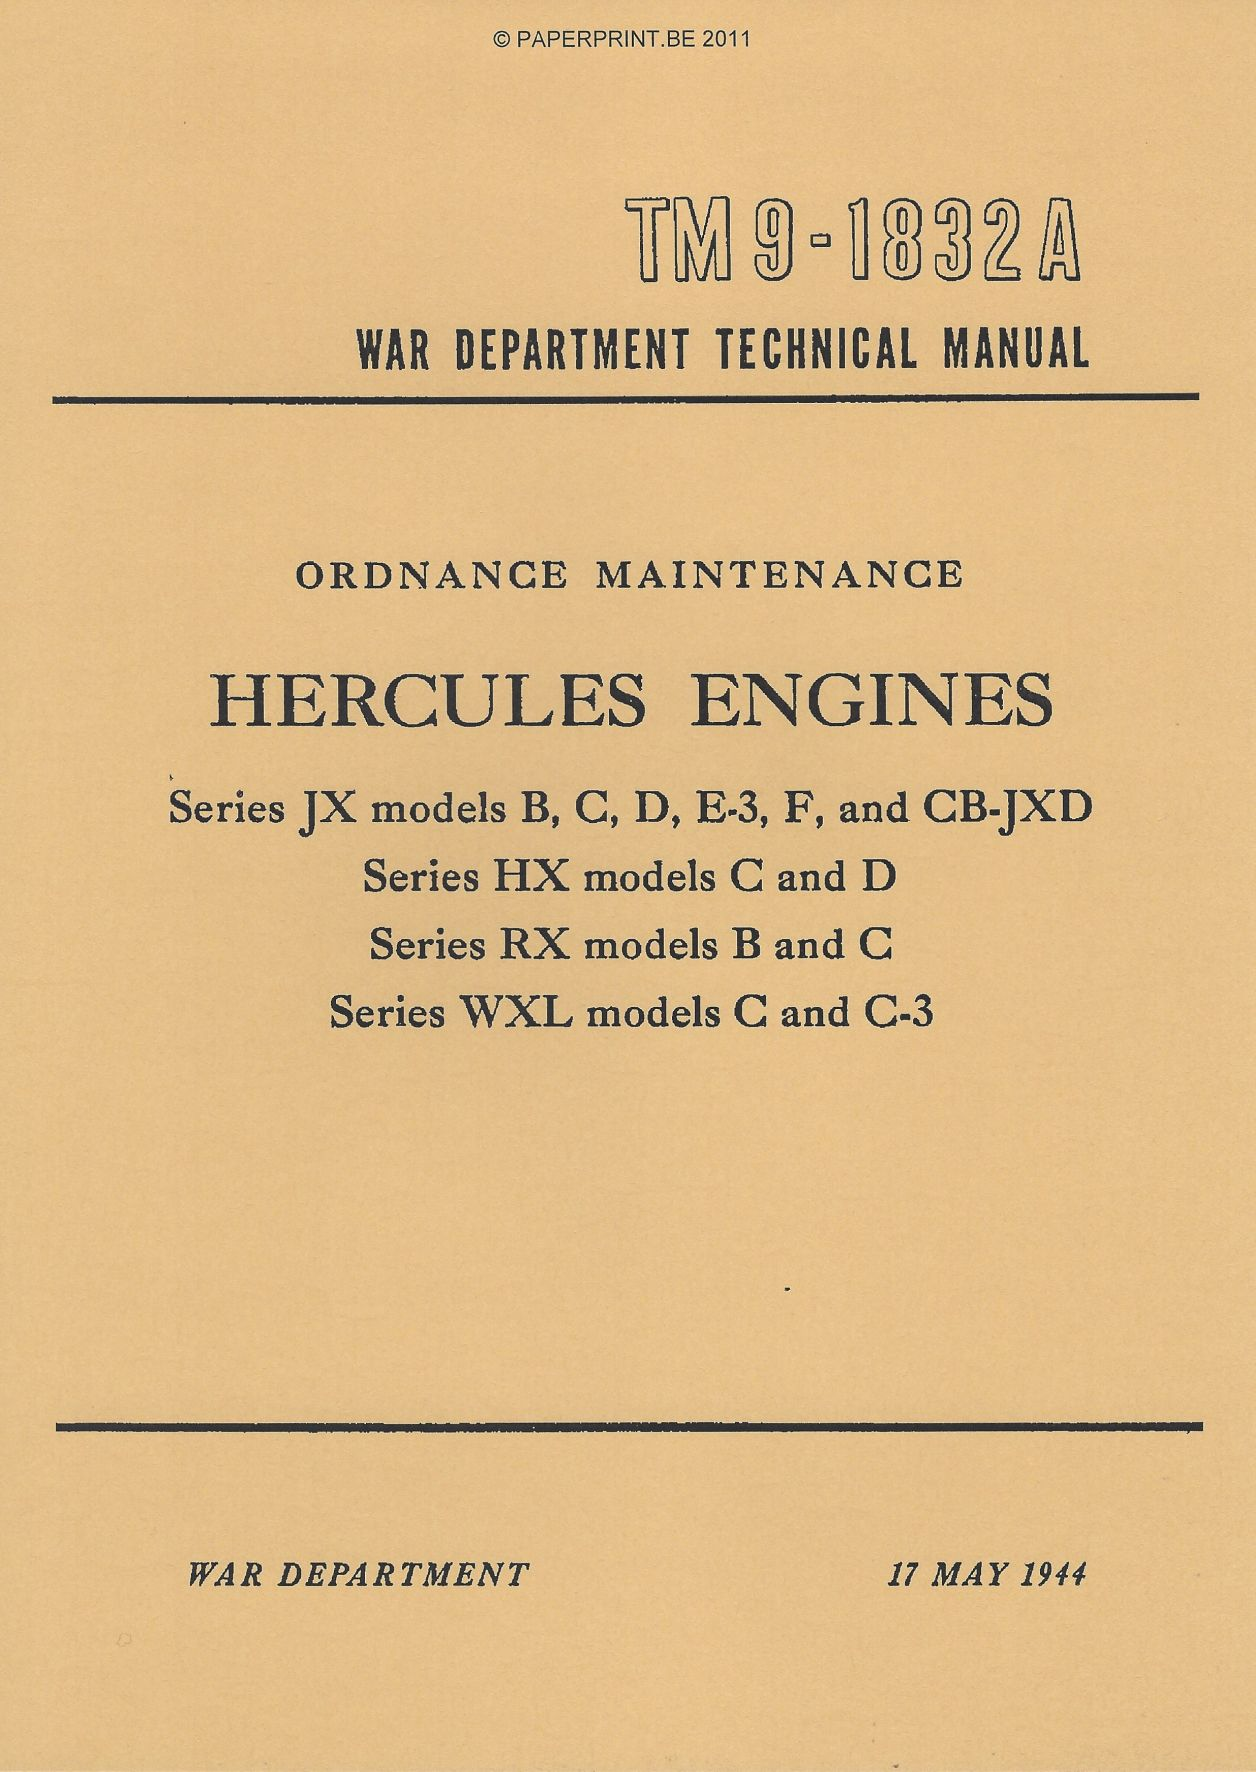 TM 9-1832A US HERCULES ENGINES